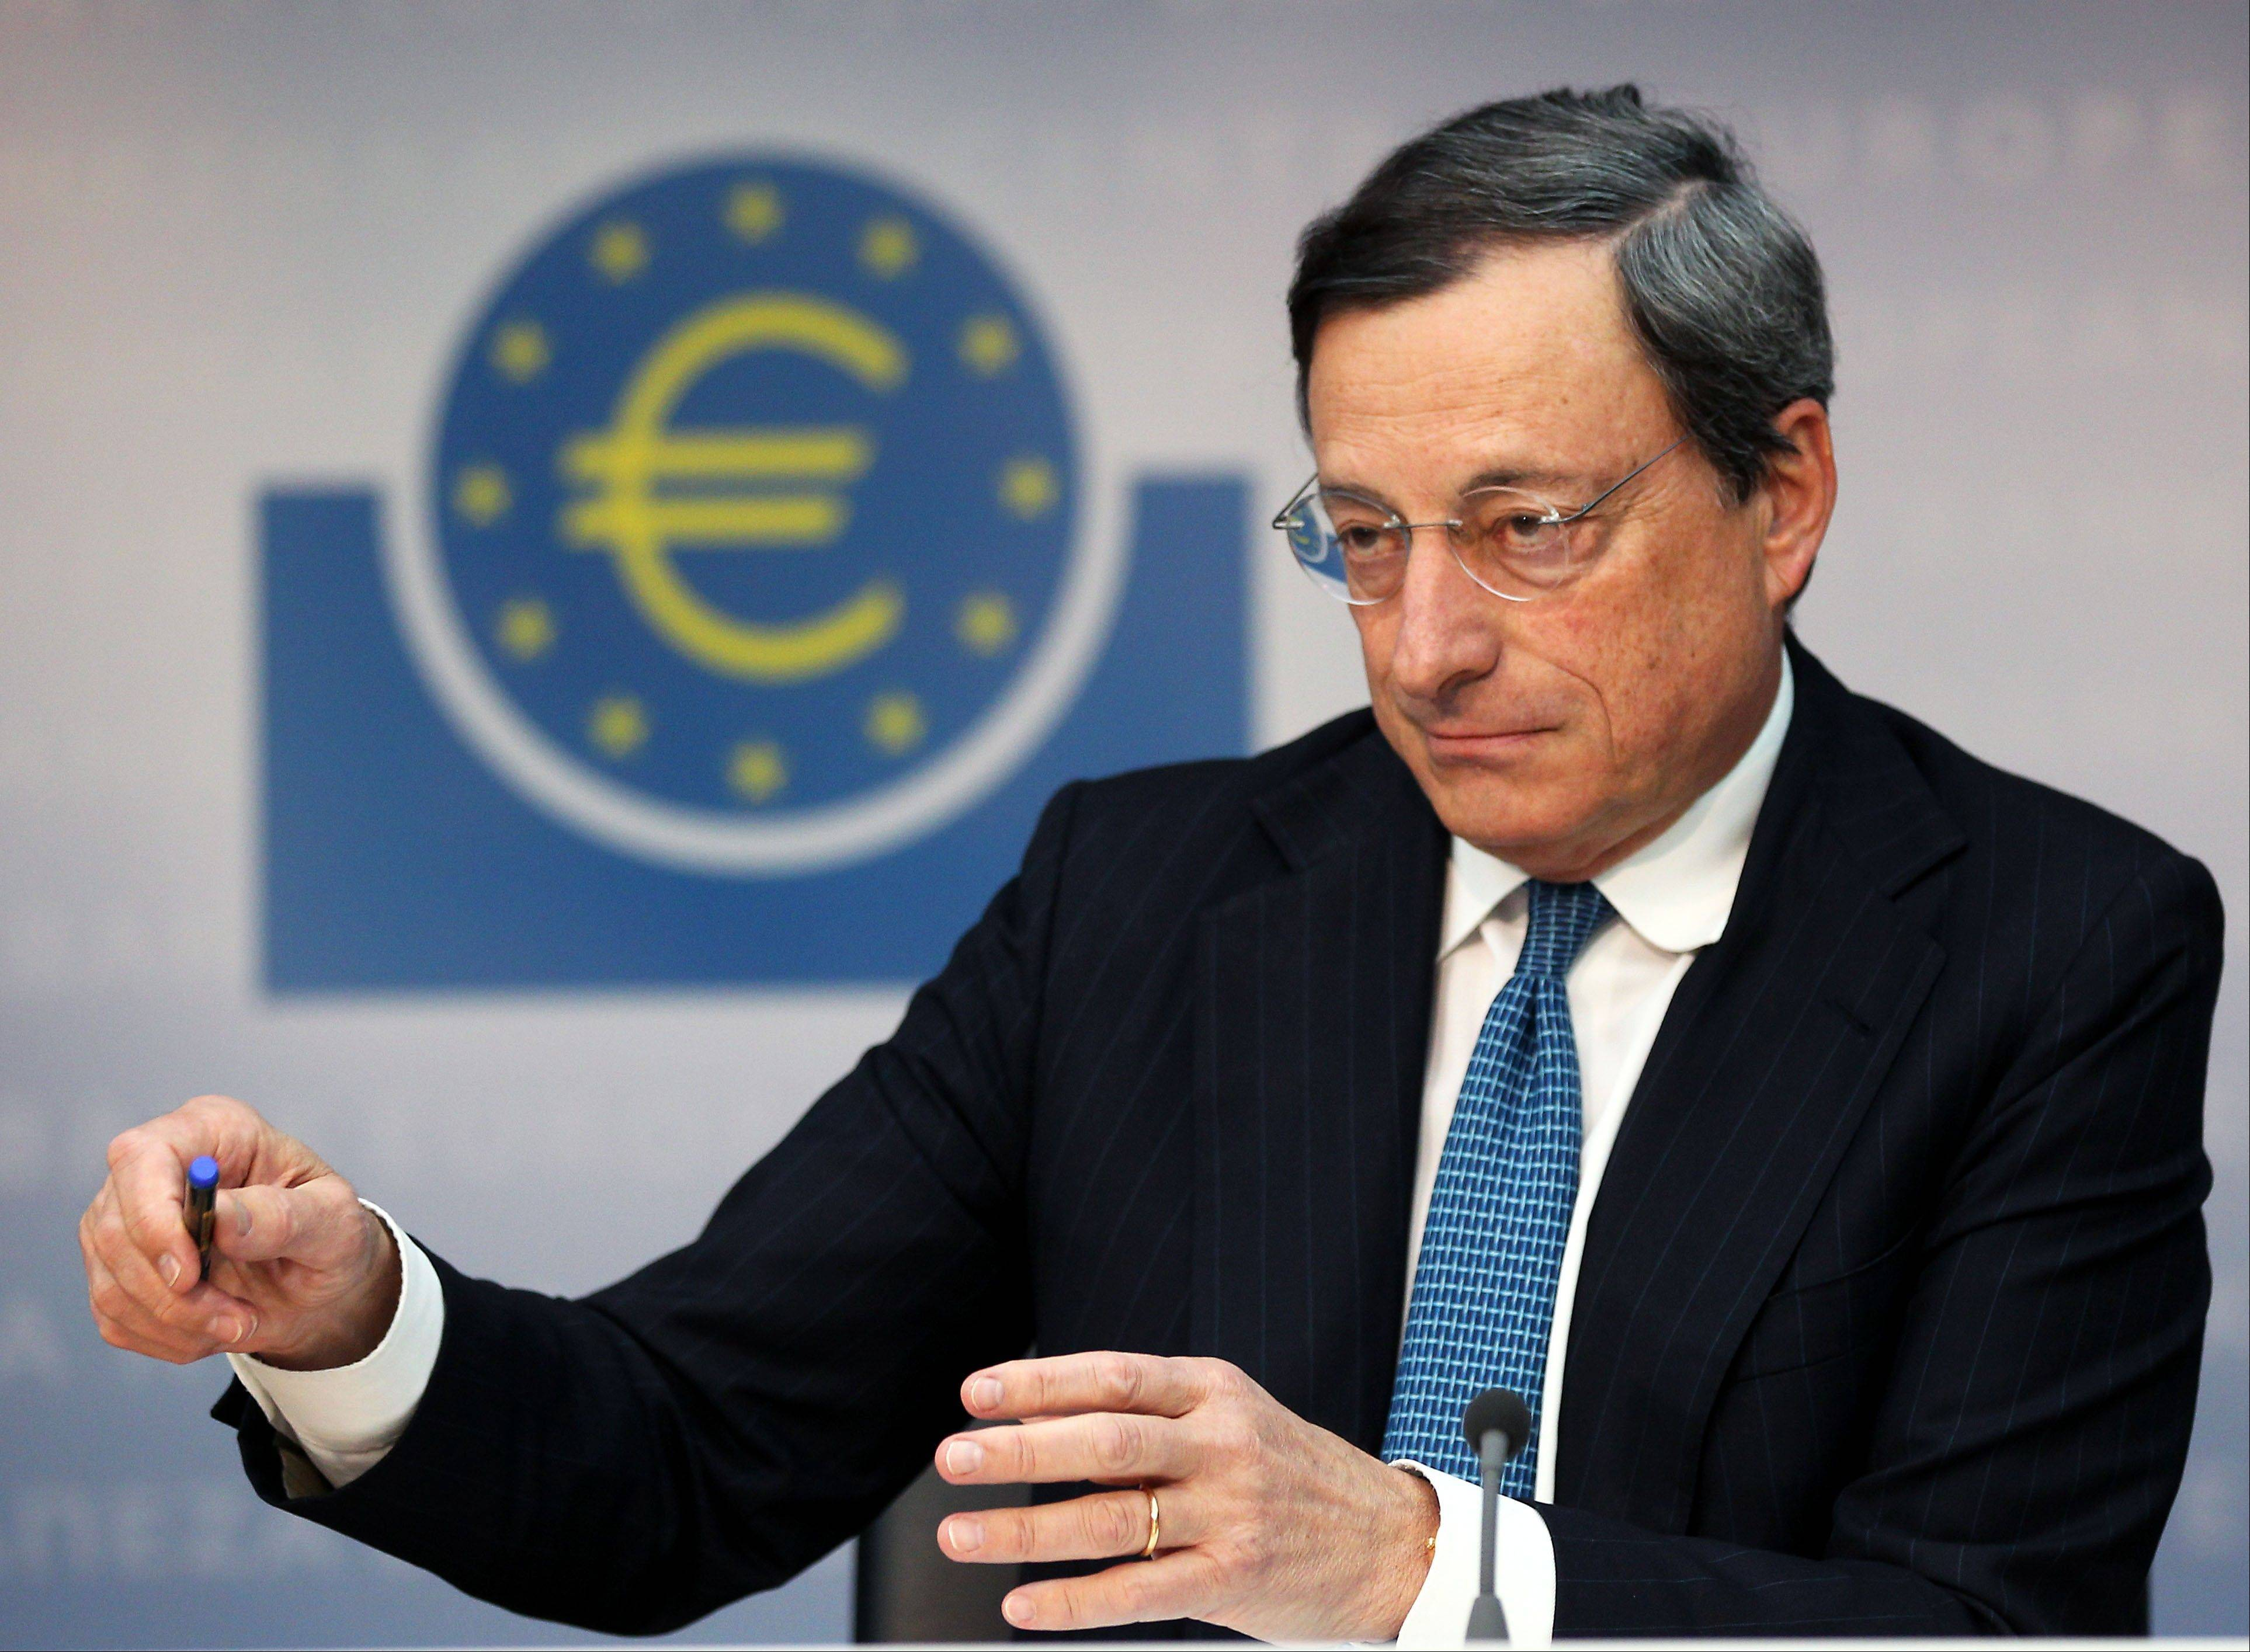 President of European Central Bank Mario Draghi currently holds more sway over the global economy that Ben Bernanke, chairman of the U.S. Federal Reserve.